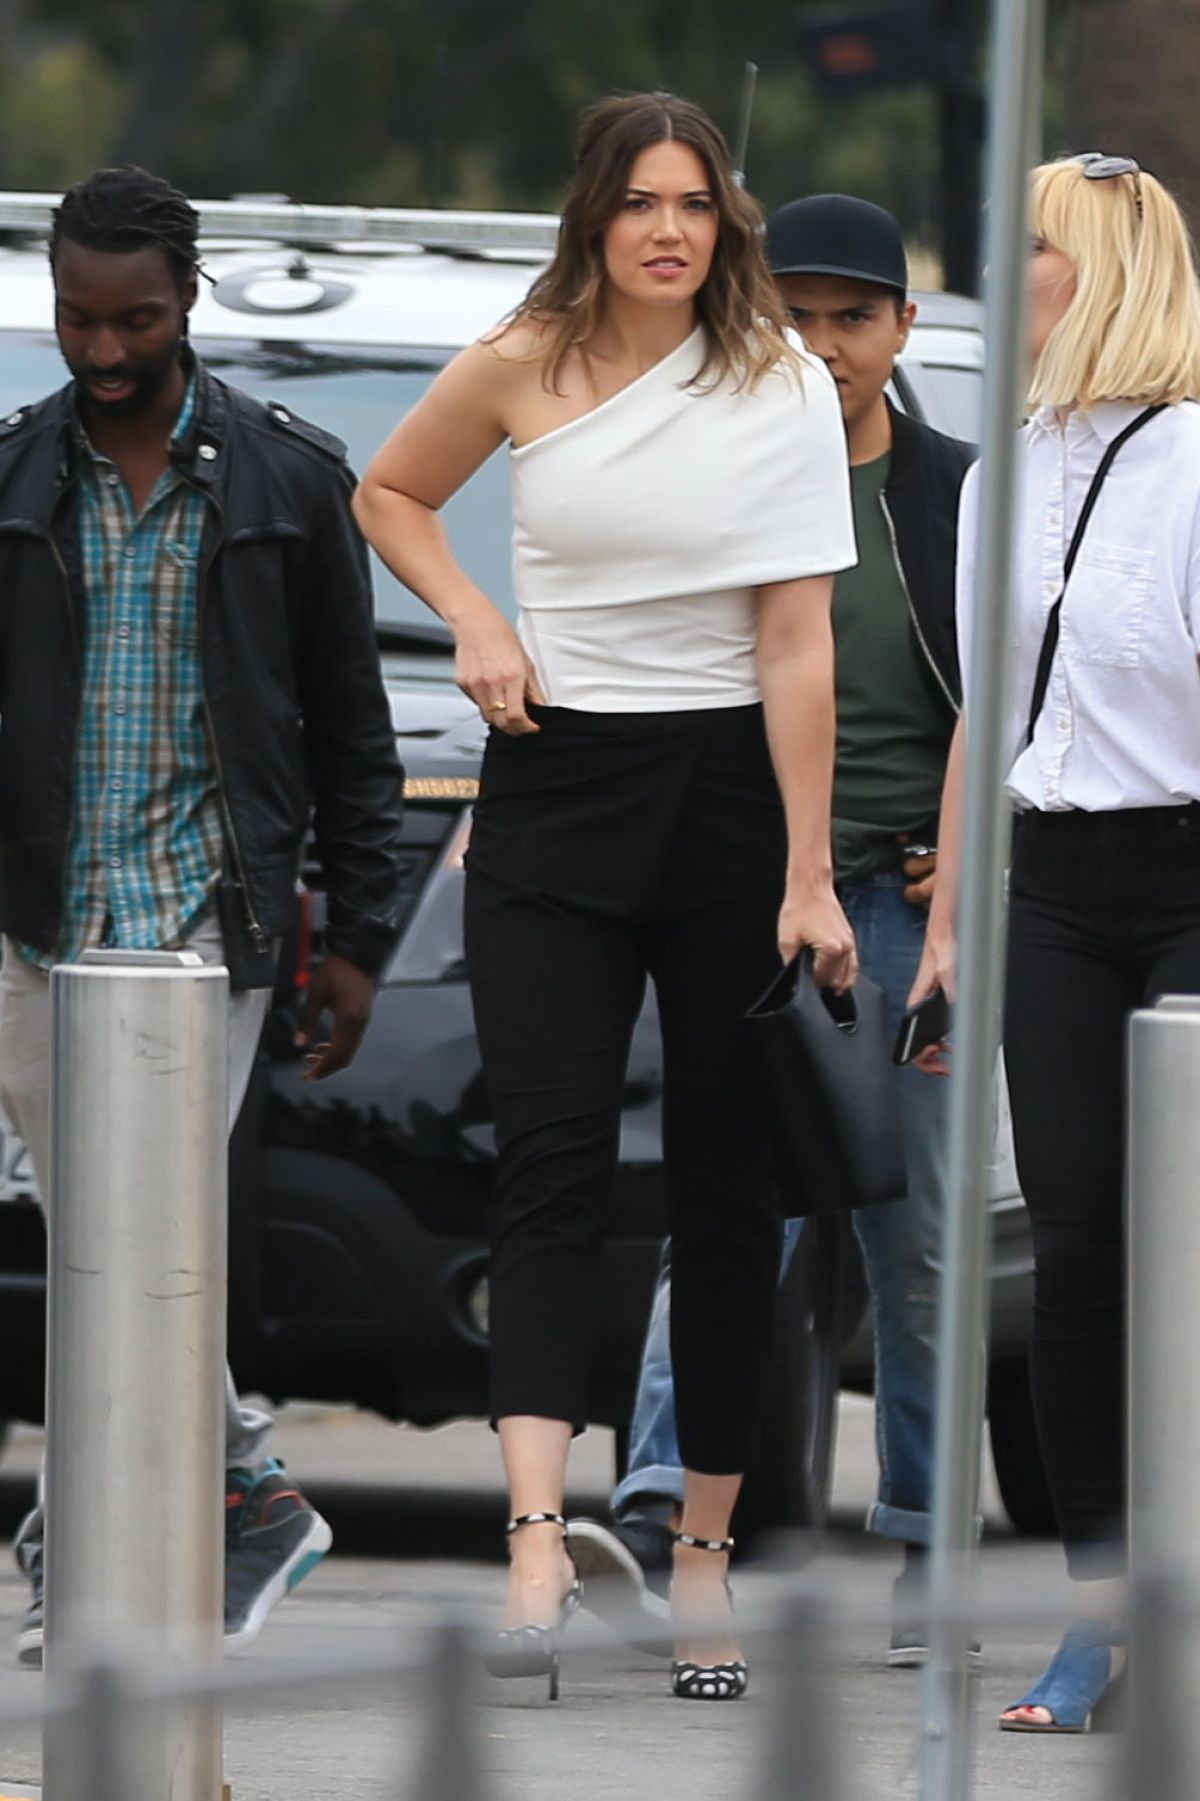 Mandy Moore At 'Extra' in Universal City   mandy-moore-at-extra-in-universal-city-_3